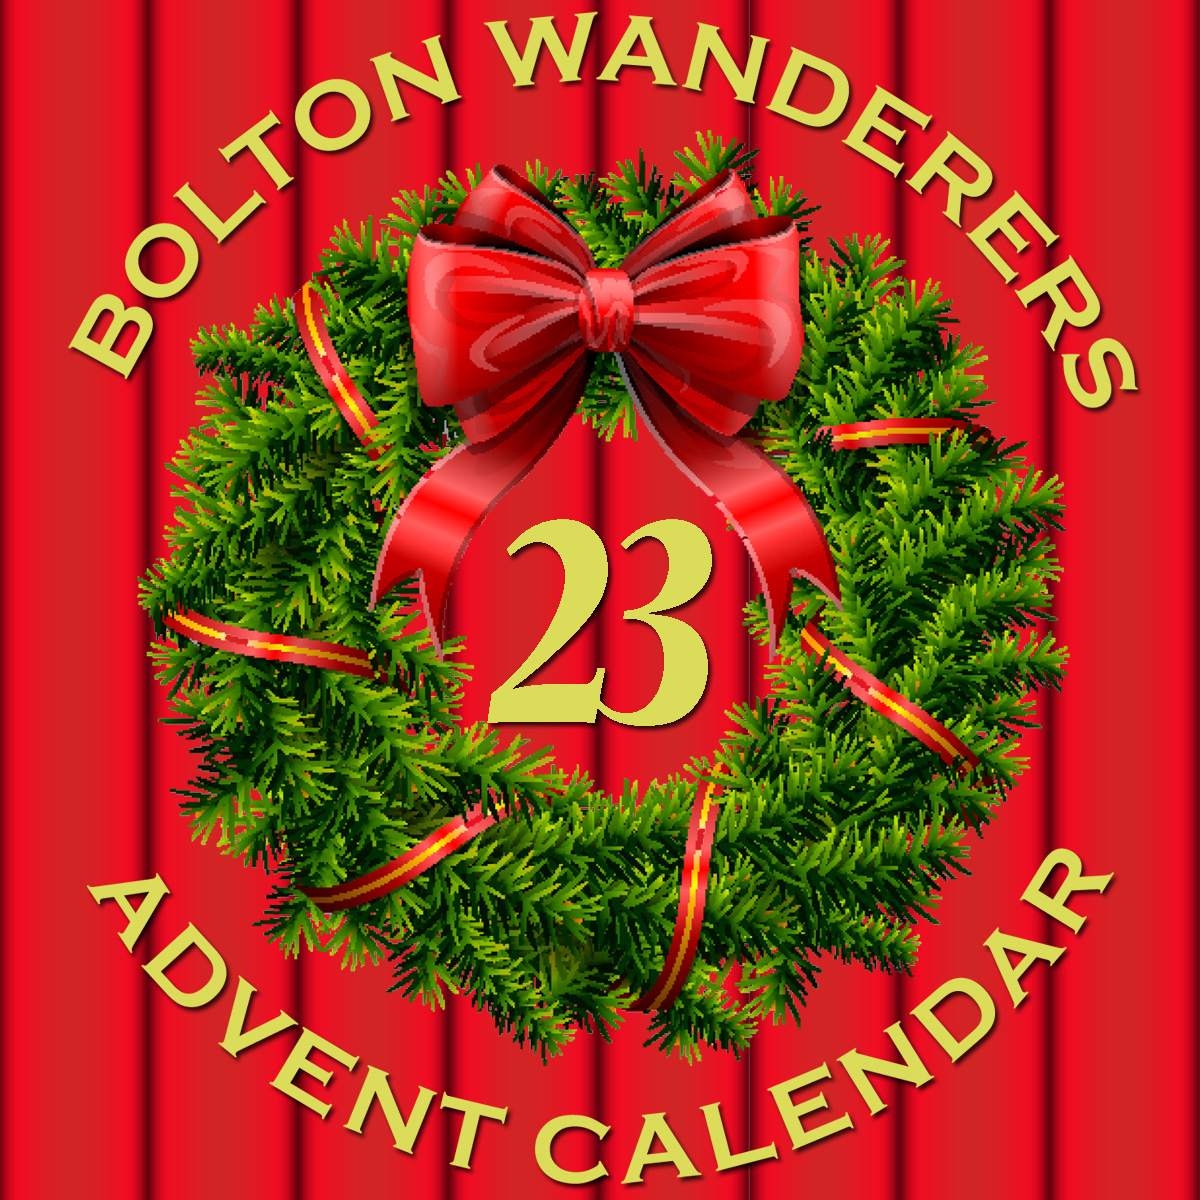 The Bolton News: advent calendar 23